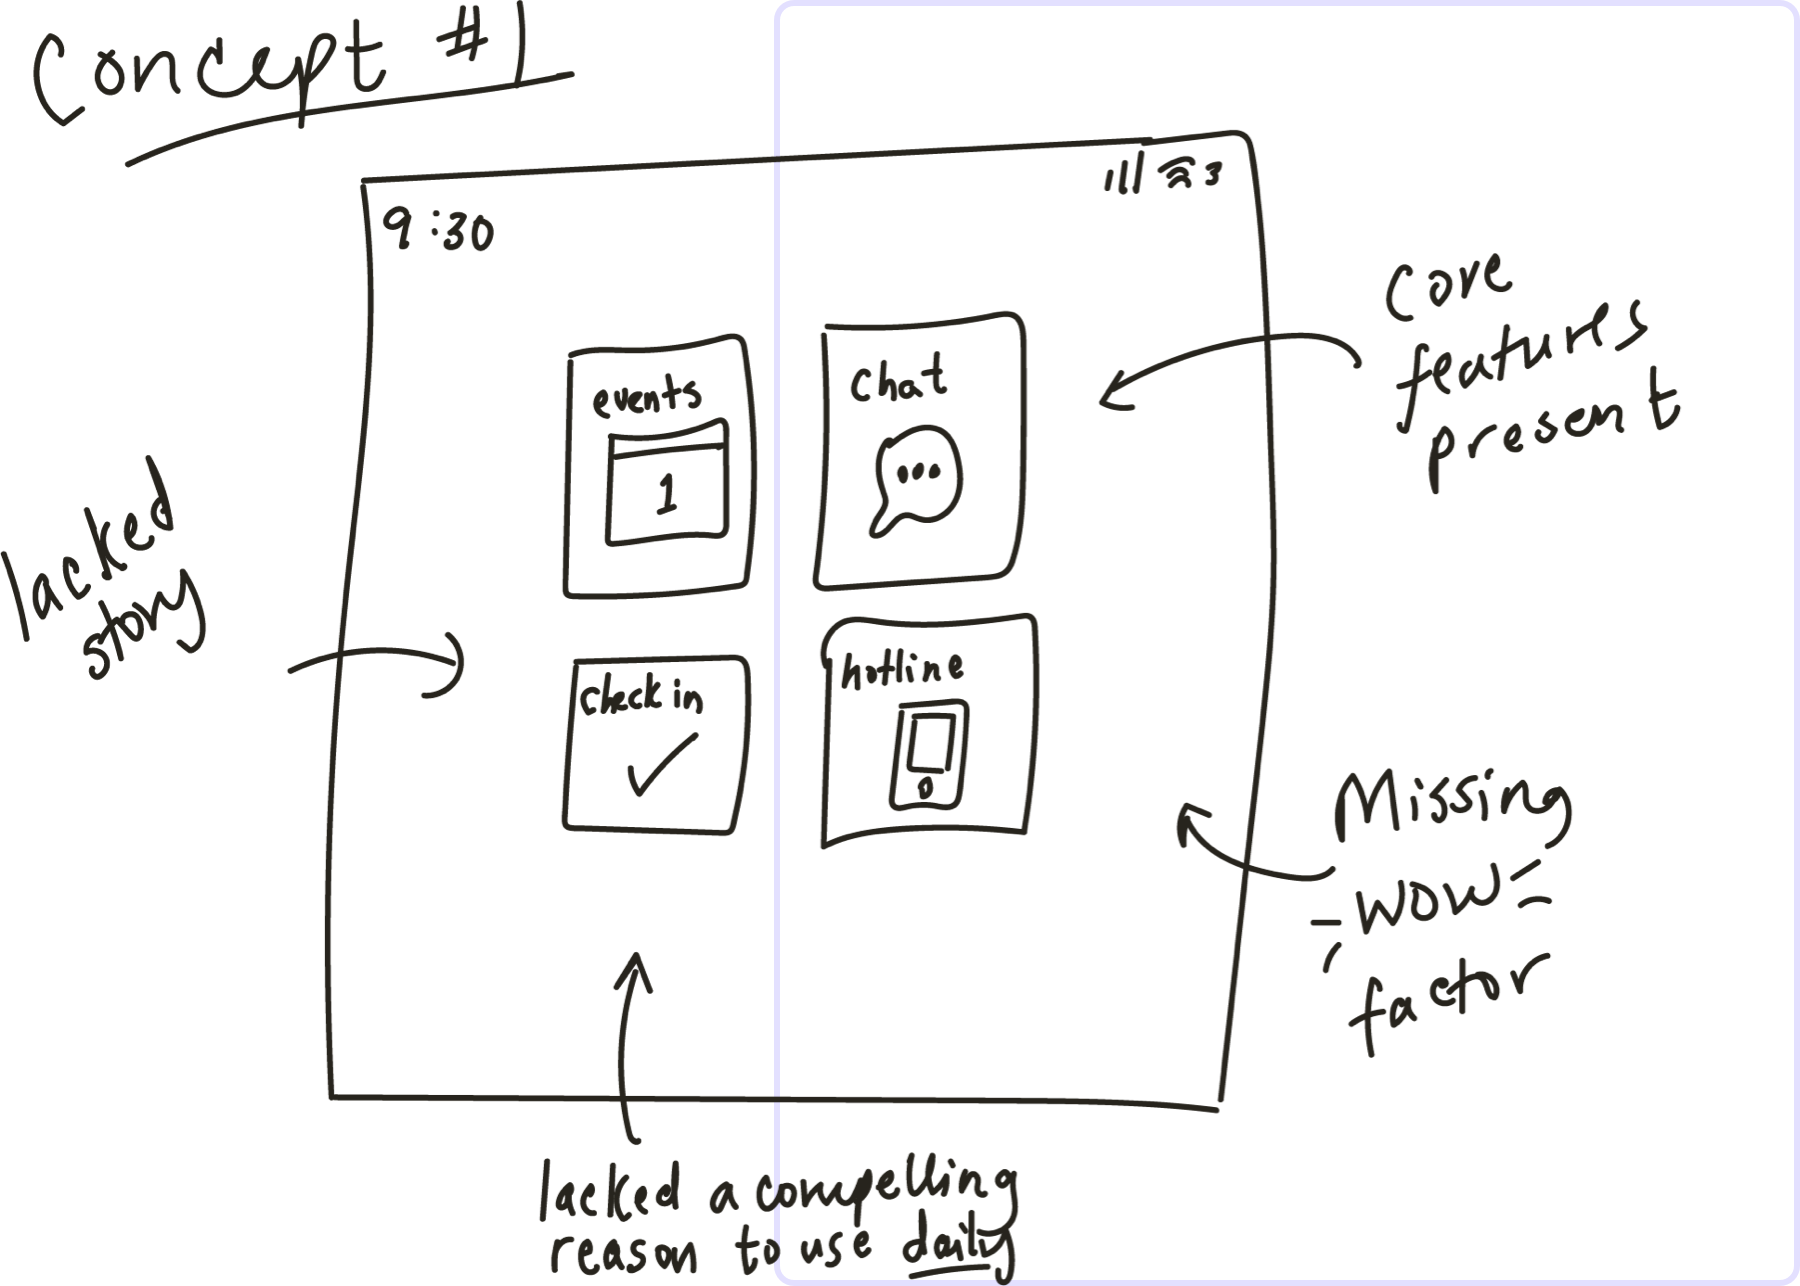 A hand drawn initial concept that includes four key features: events, chat, check-in, and hotline